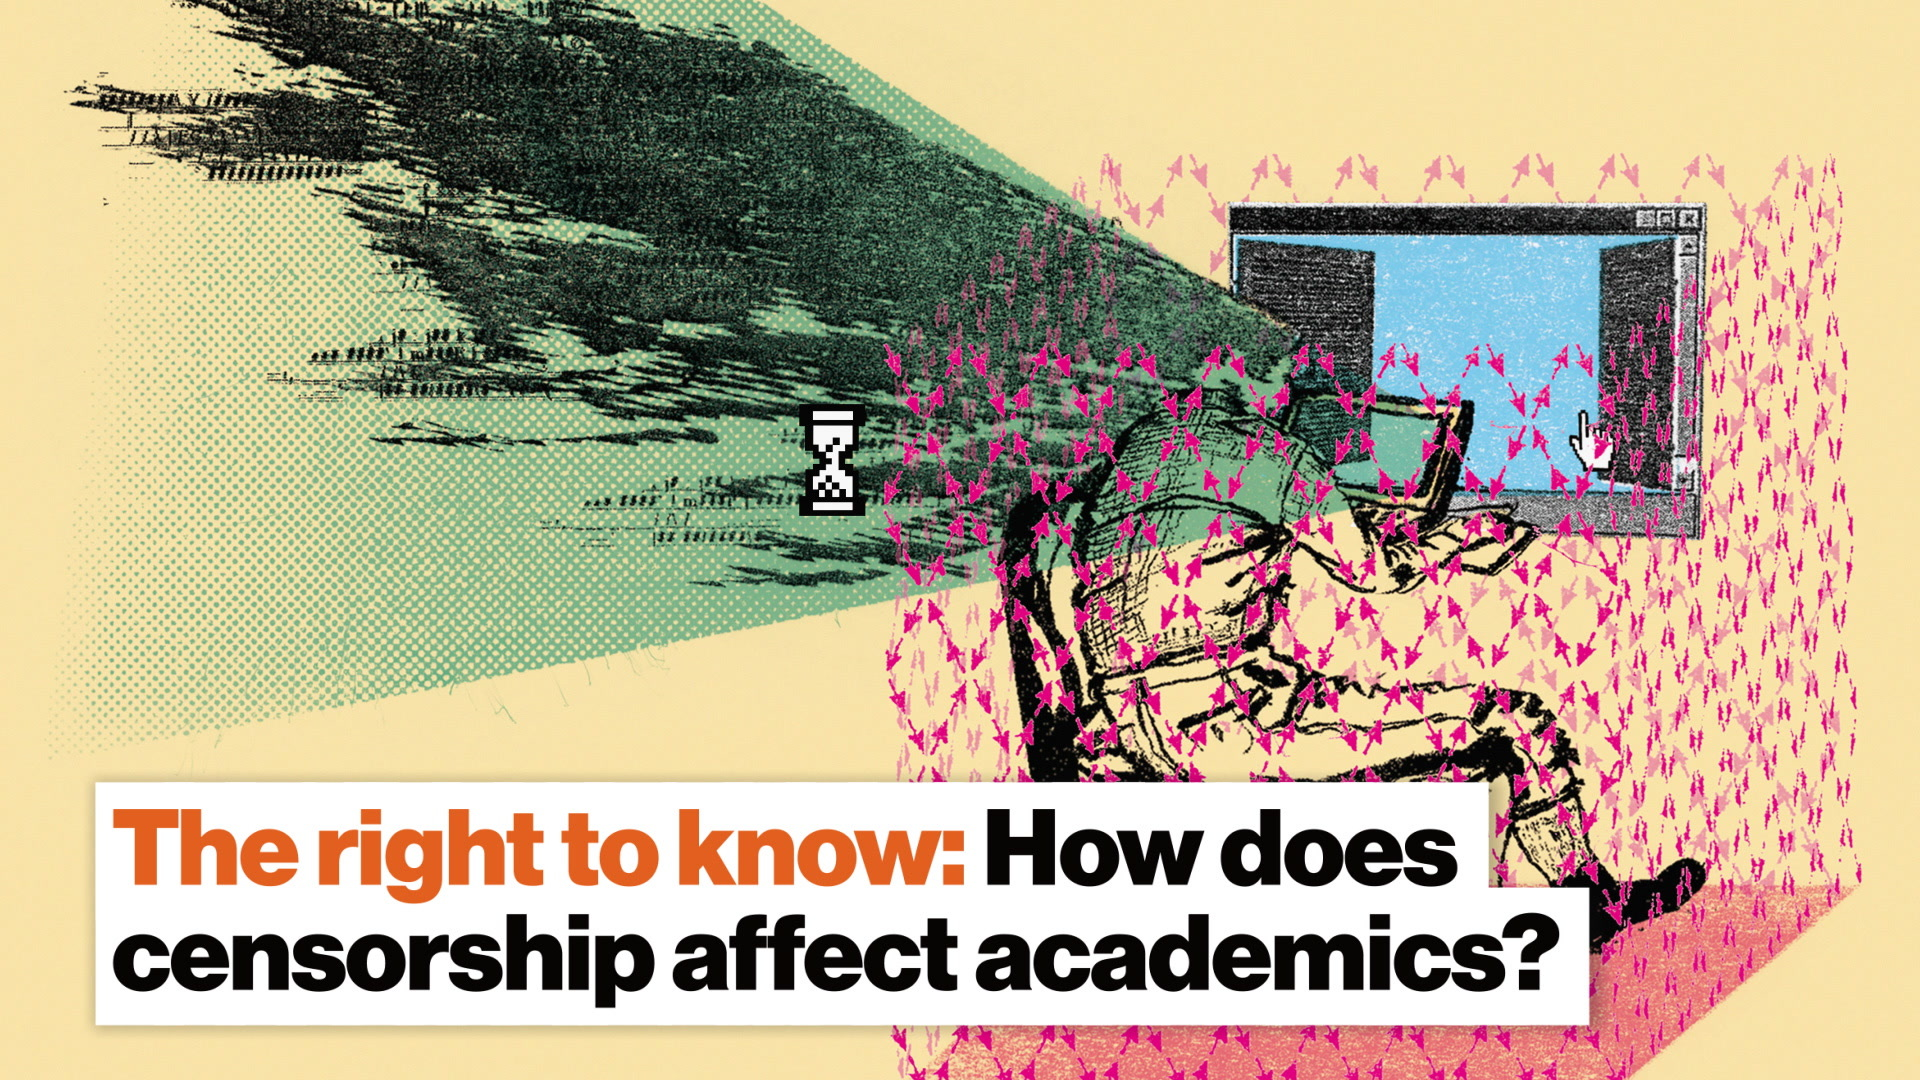 The right to know: How does censorship affect academics?